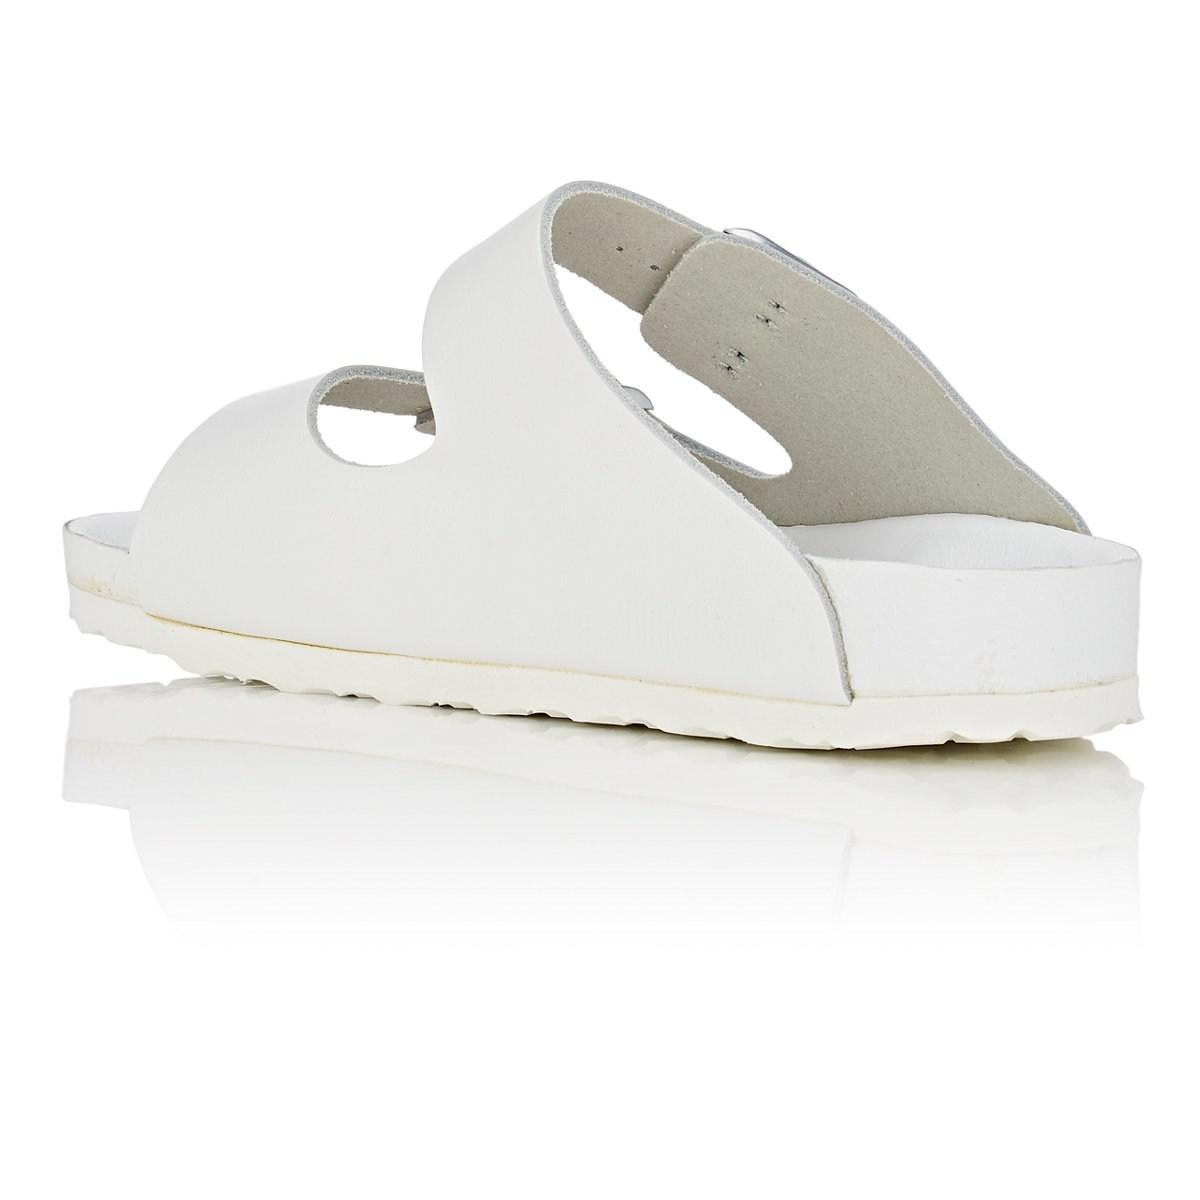 1e1b45101dd0 Birkenstock - White Monterey Leather Double-buckle Sandals - Lyst. View  fullscreen